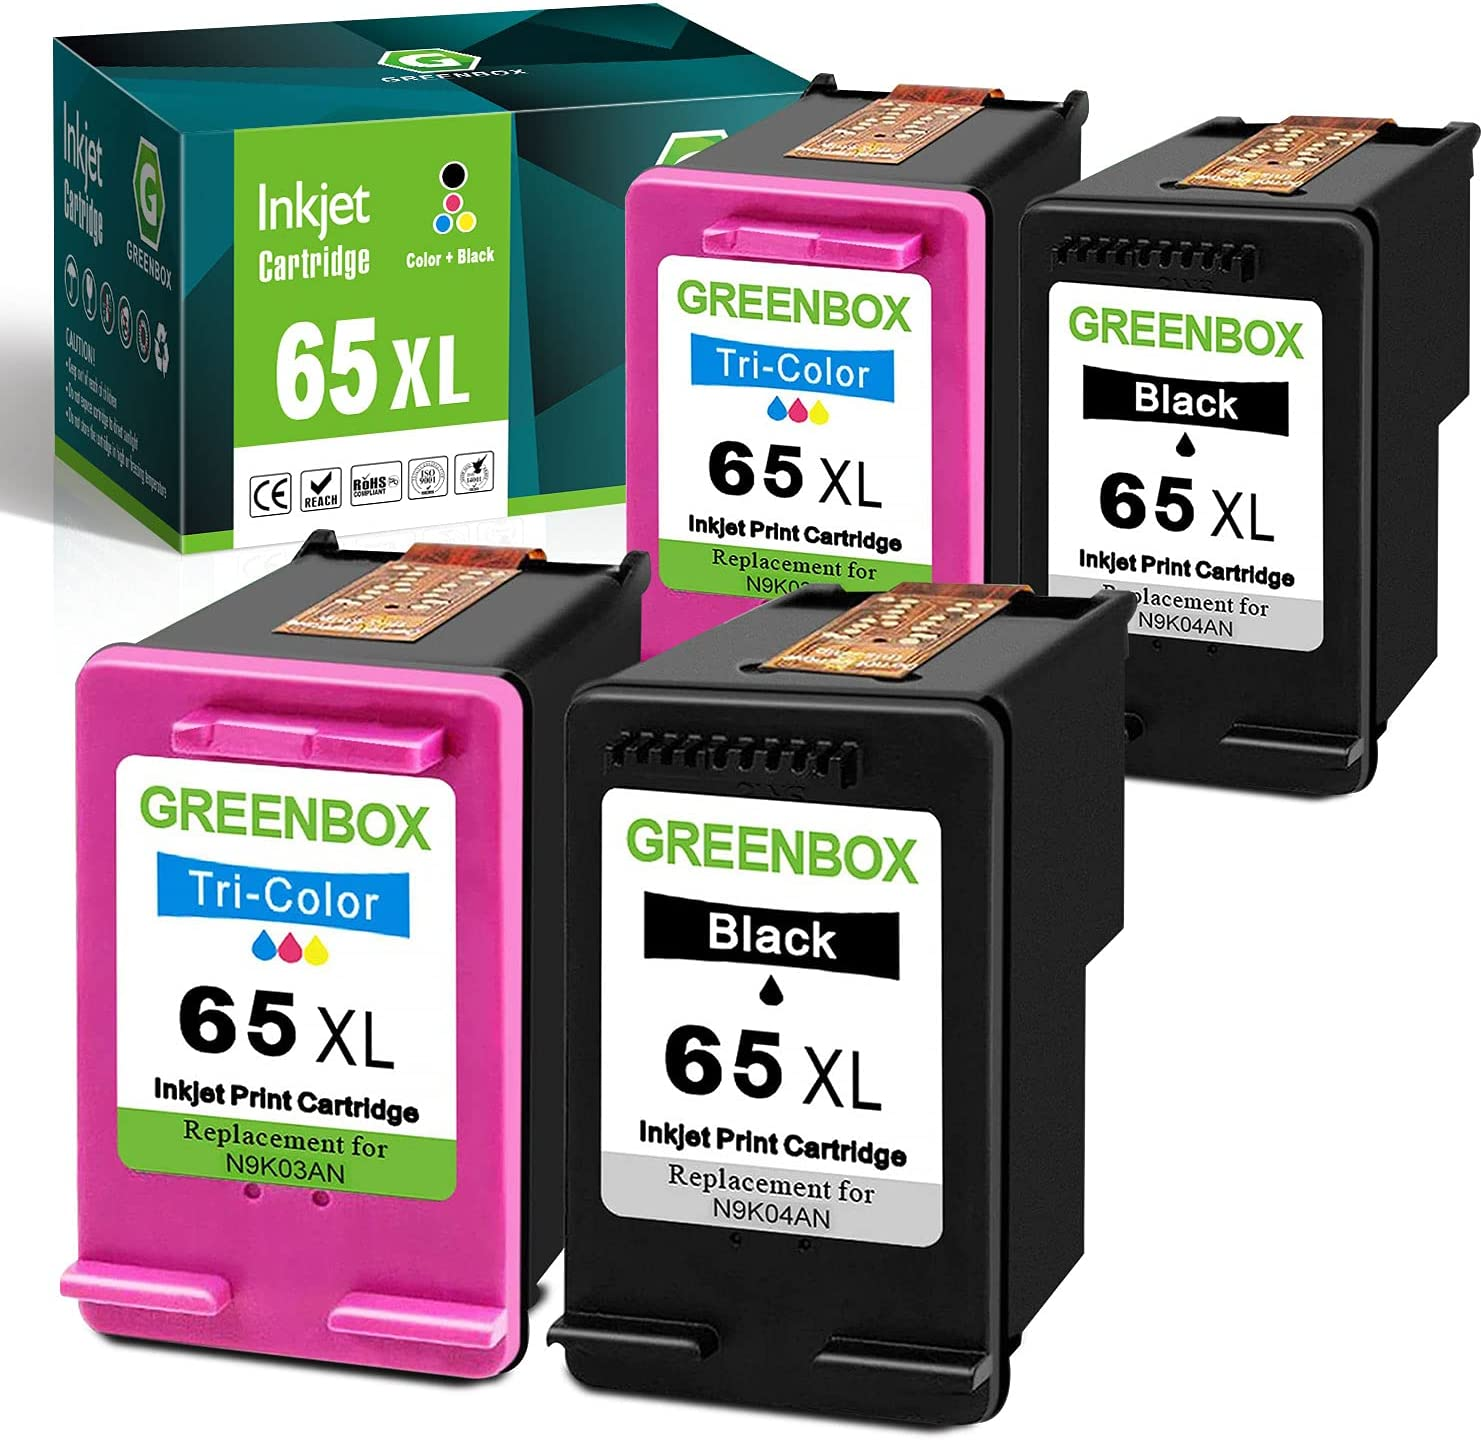 GREENBOX Remanufactured Ink Cartridge 65 Replacement for HP 65XL 65 XL N9K04AN for HP Envy 5055 5052 5058 DeskJet 3755 2655 3720 3721 3722 3723 3752 3730 3758 2652 Printer Tray (2 Black 2 Tri-Color)